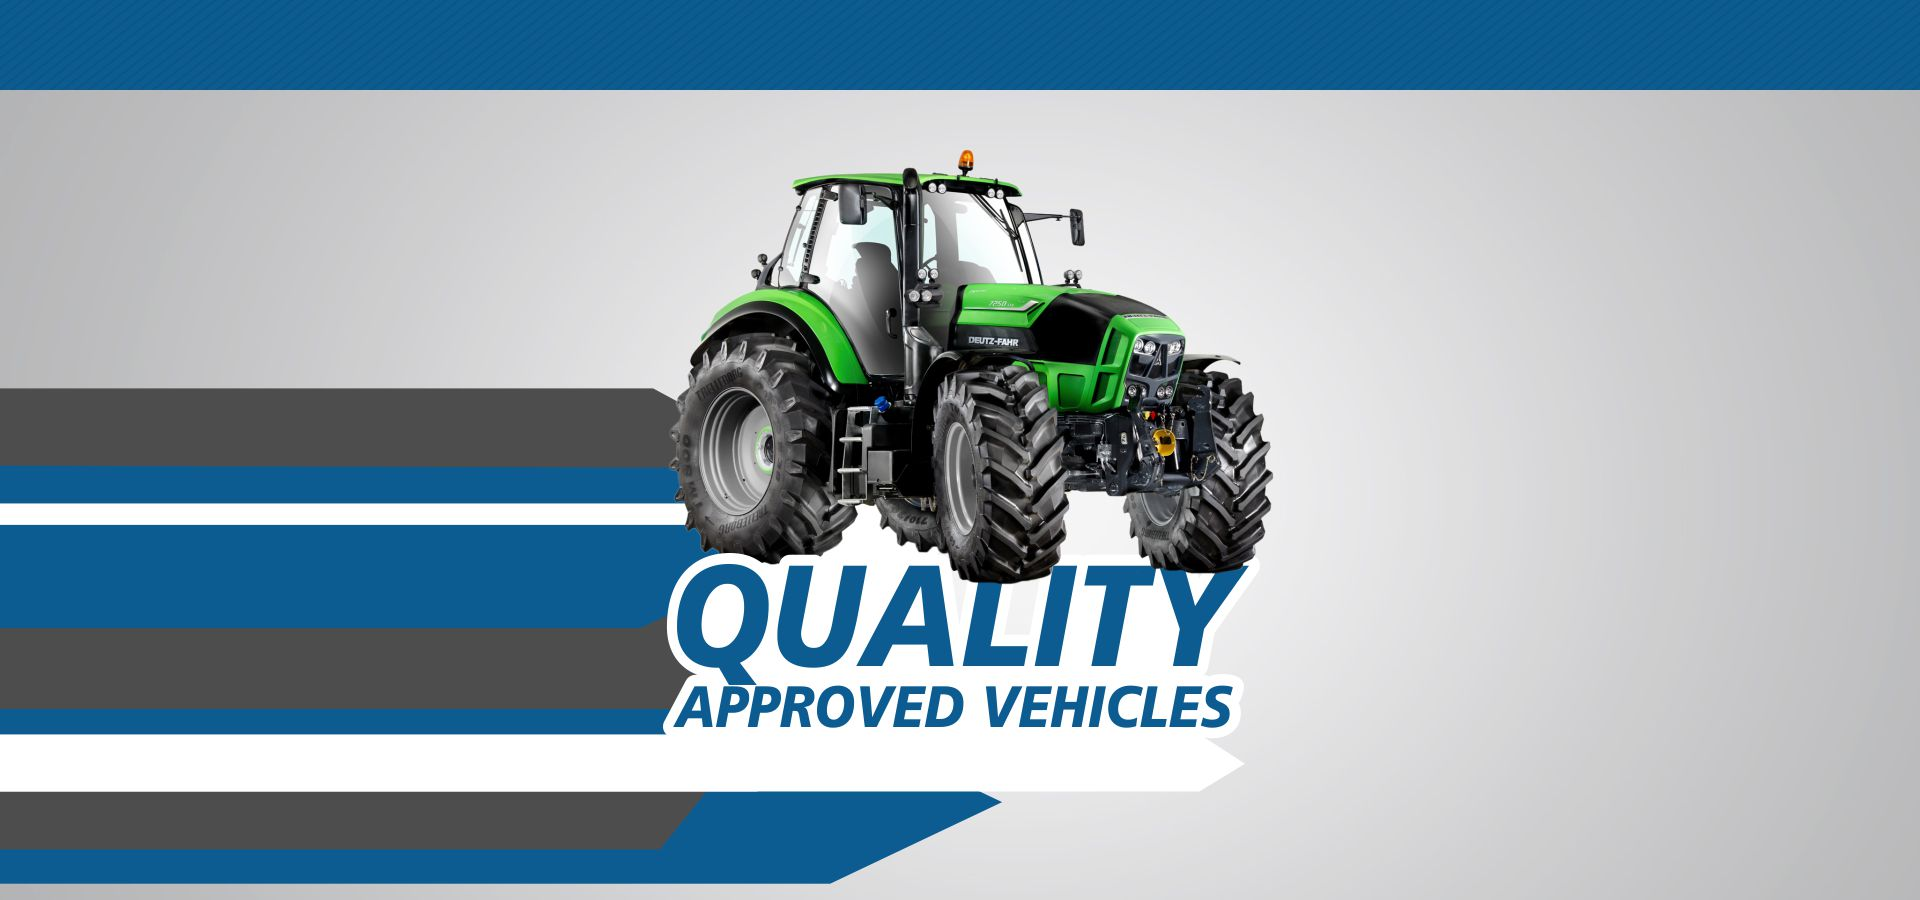 Quality approved vehicles